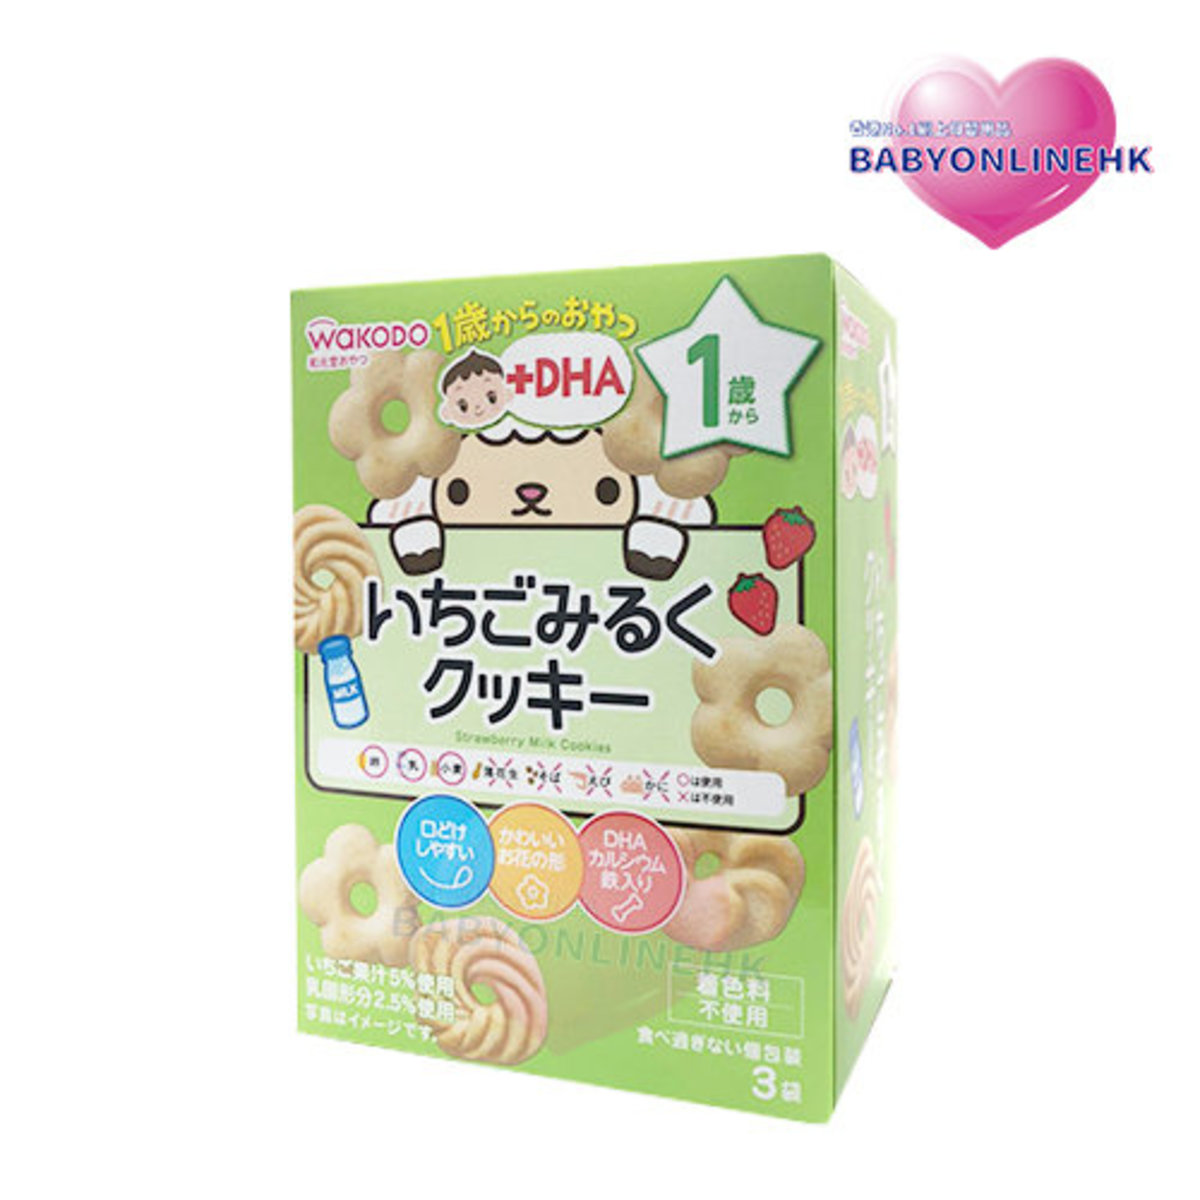 DHA Strawberry and Milk Flower Biscuit 1Y+ (Parallel Import Product)